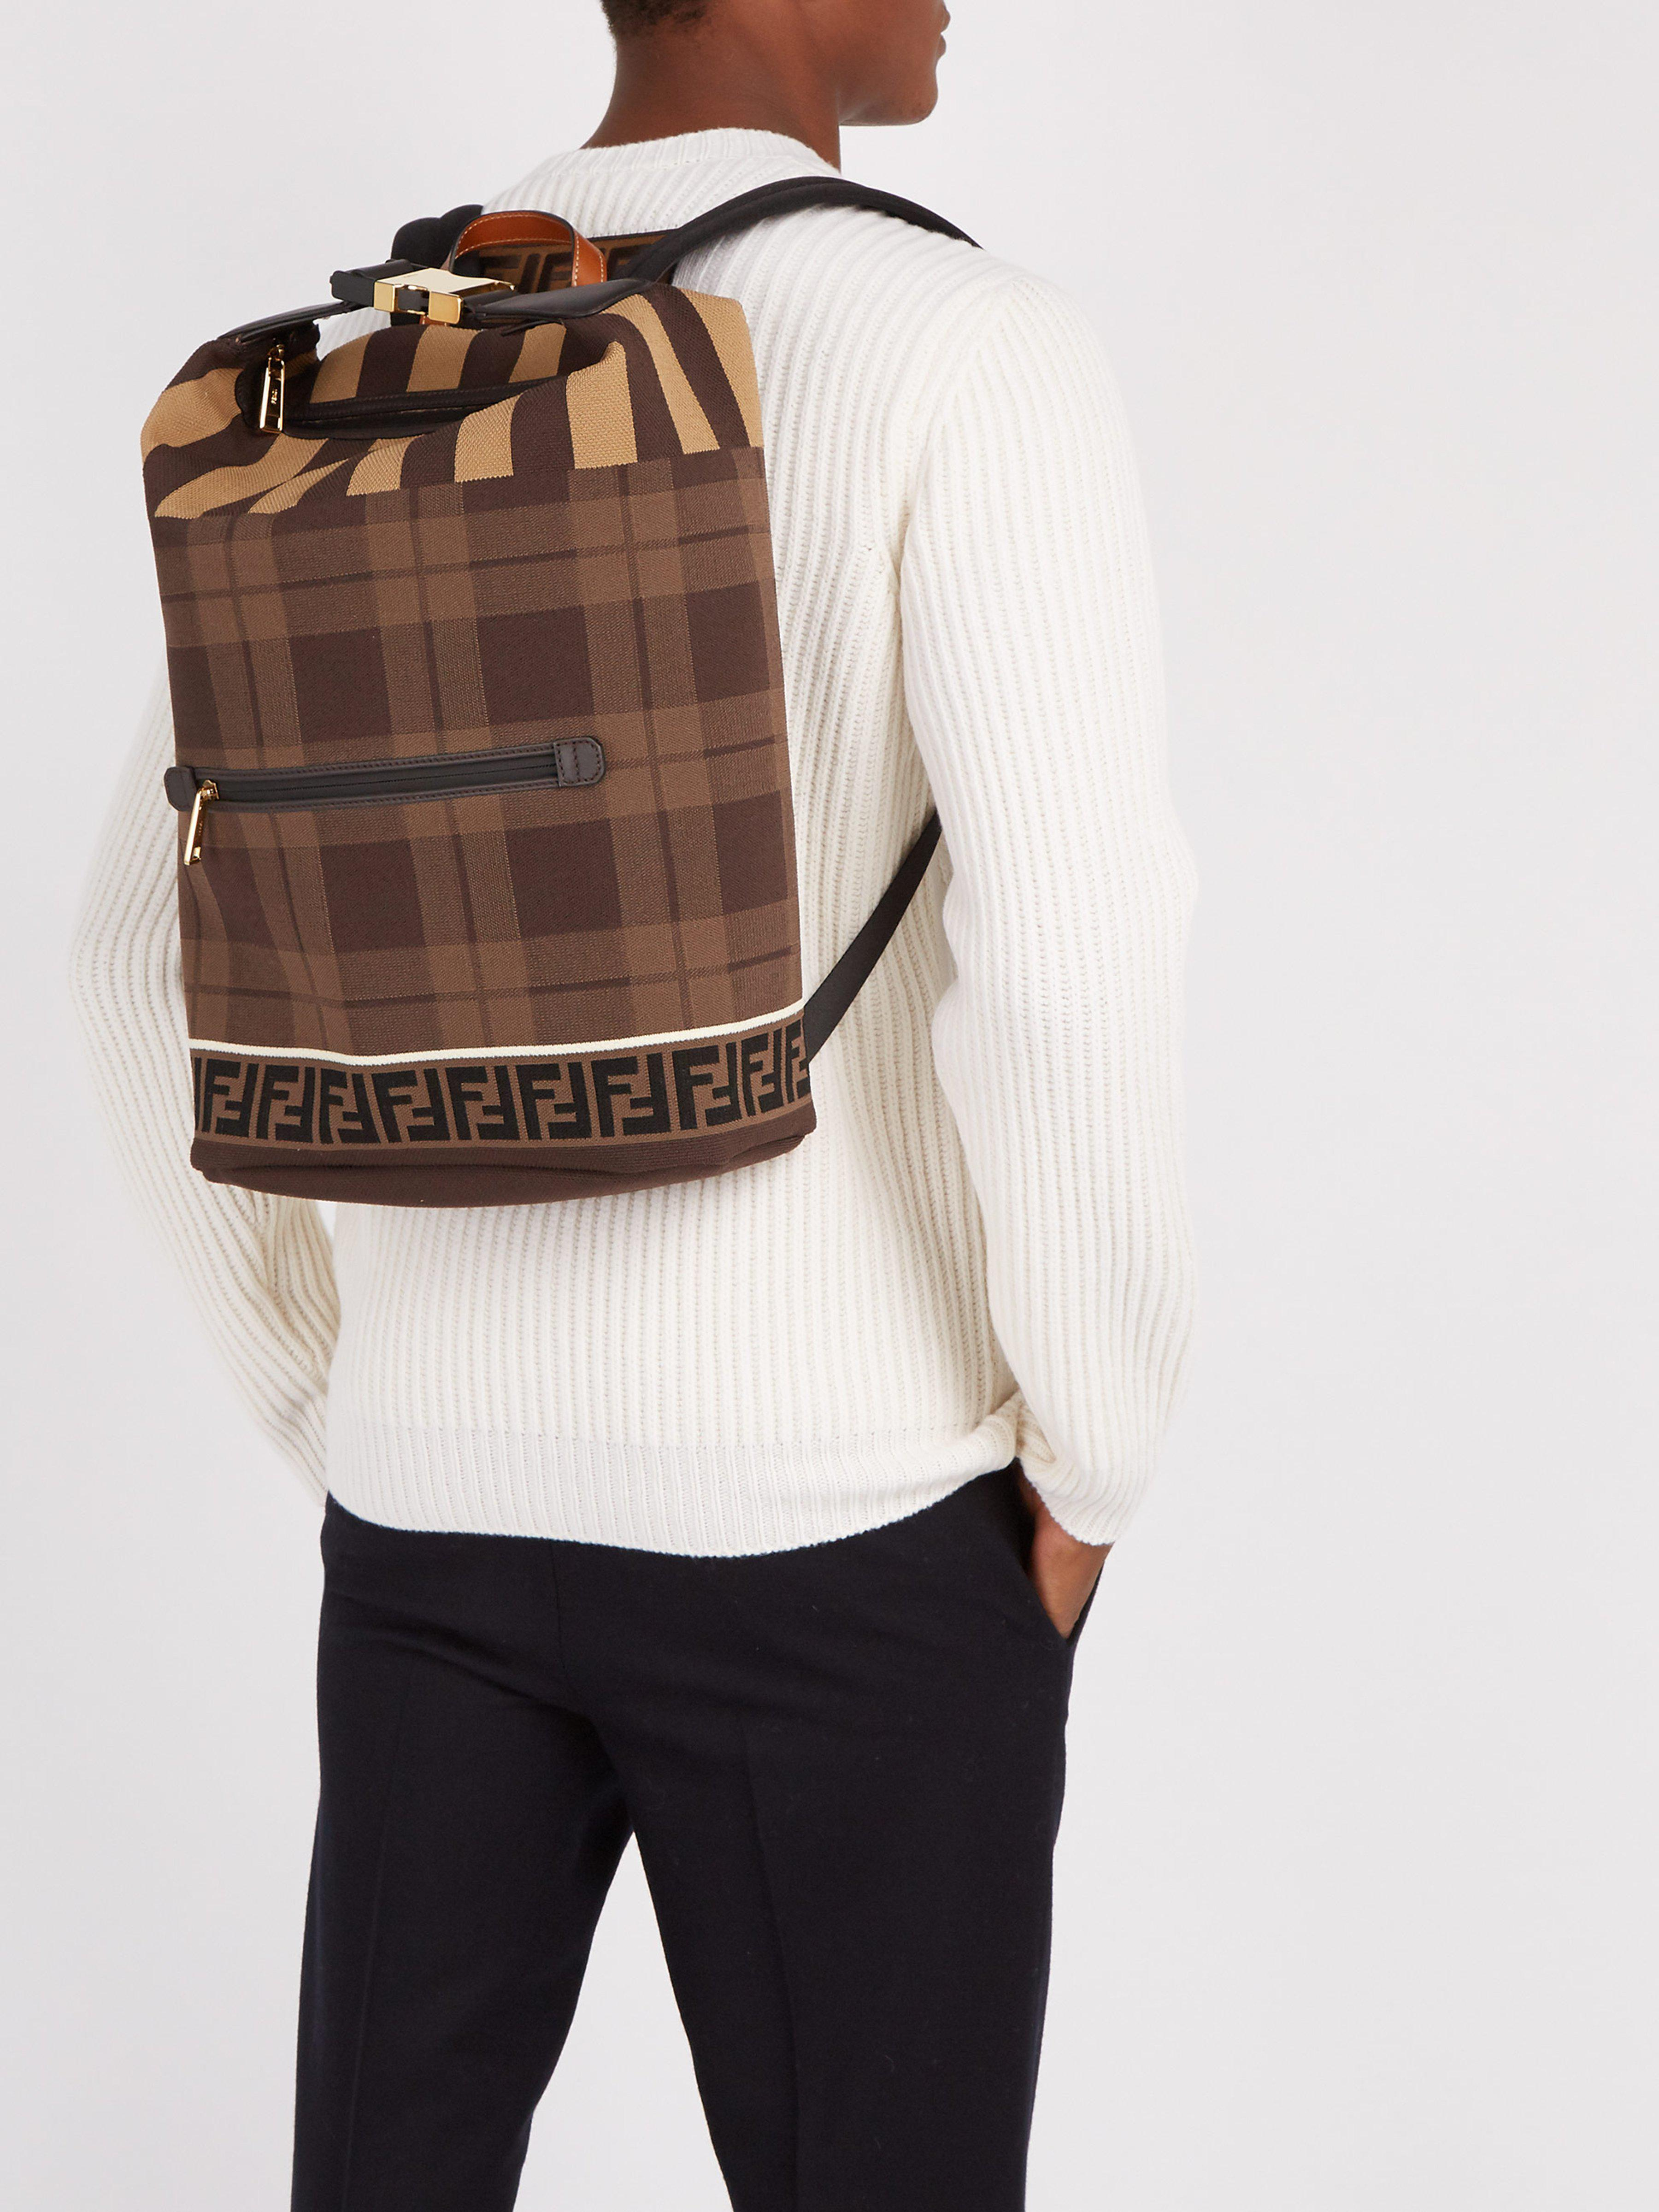 16c187c767eb Fendi Ff Technical Knit Backpack in Brown for Men - Lyst